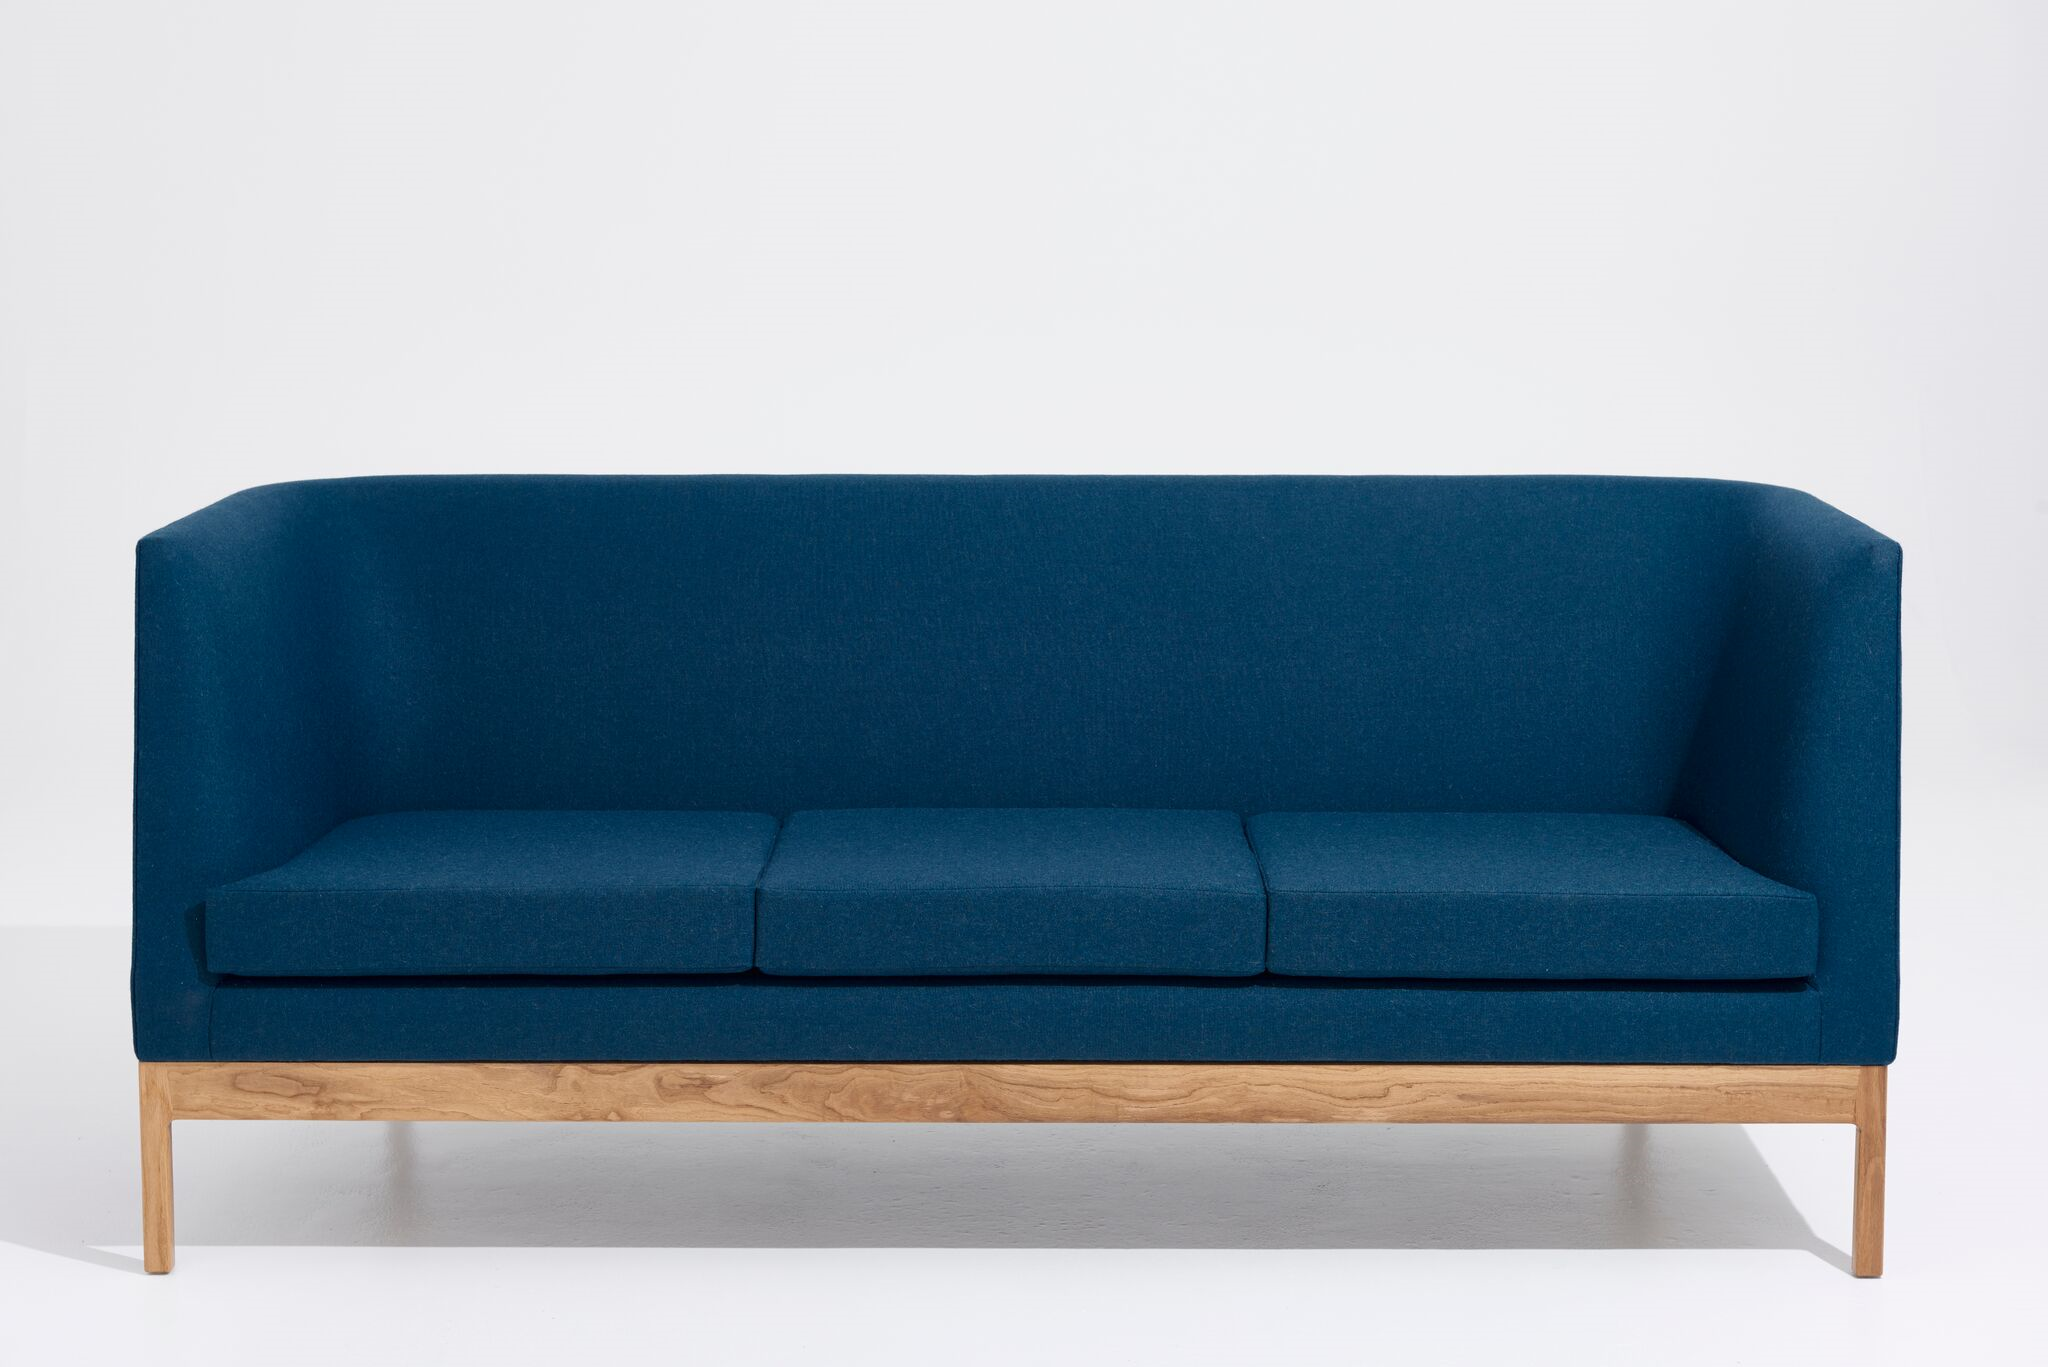 Home residential upholstered furniture and ergonomic designer pieces.